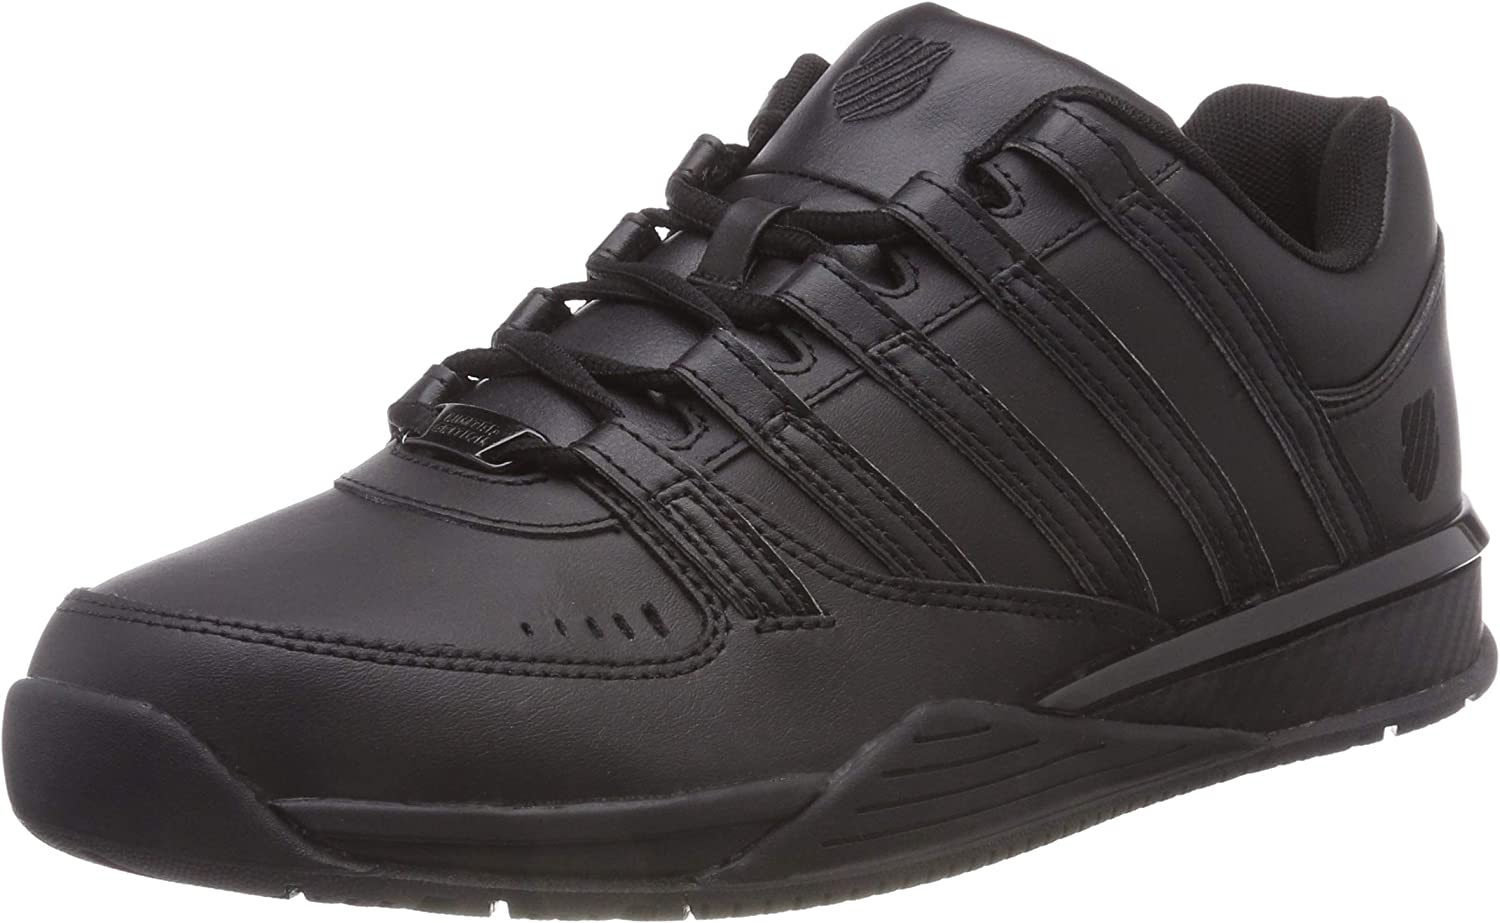 K-Swiss Men's Baxter Court Style shoes